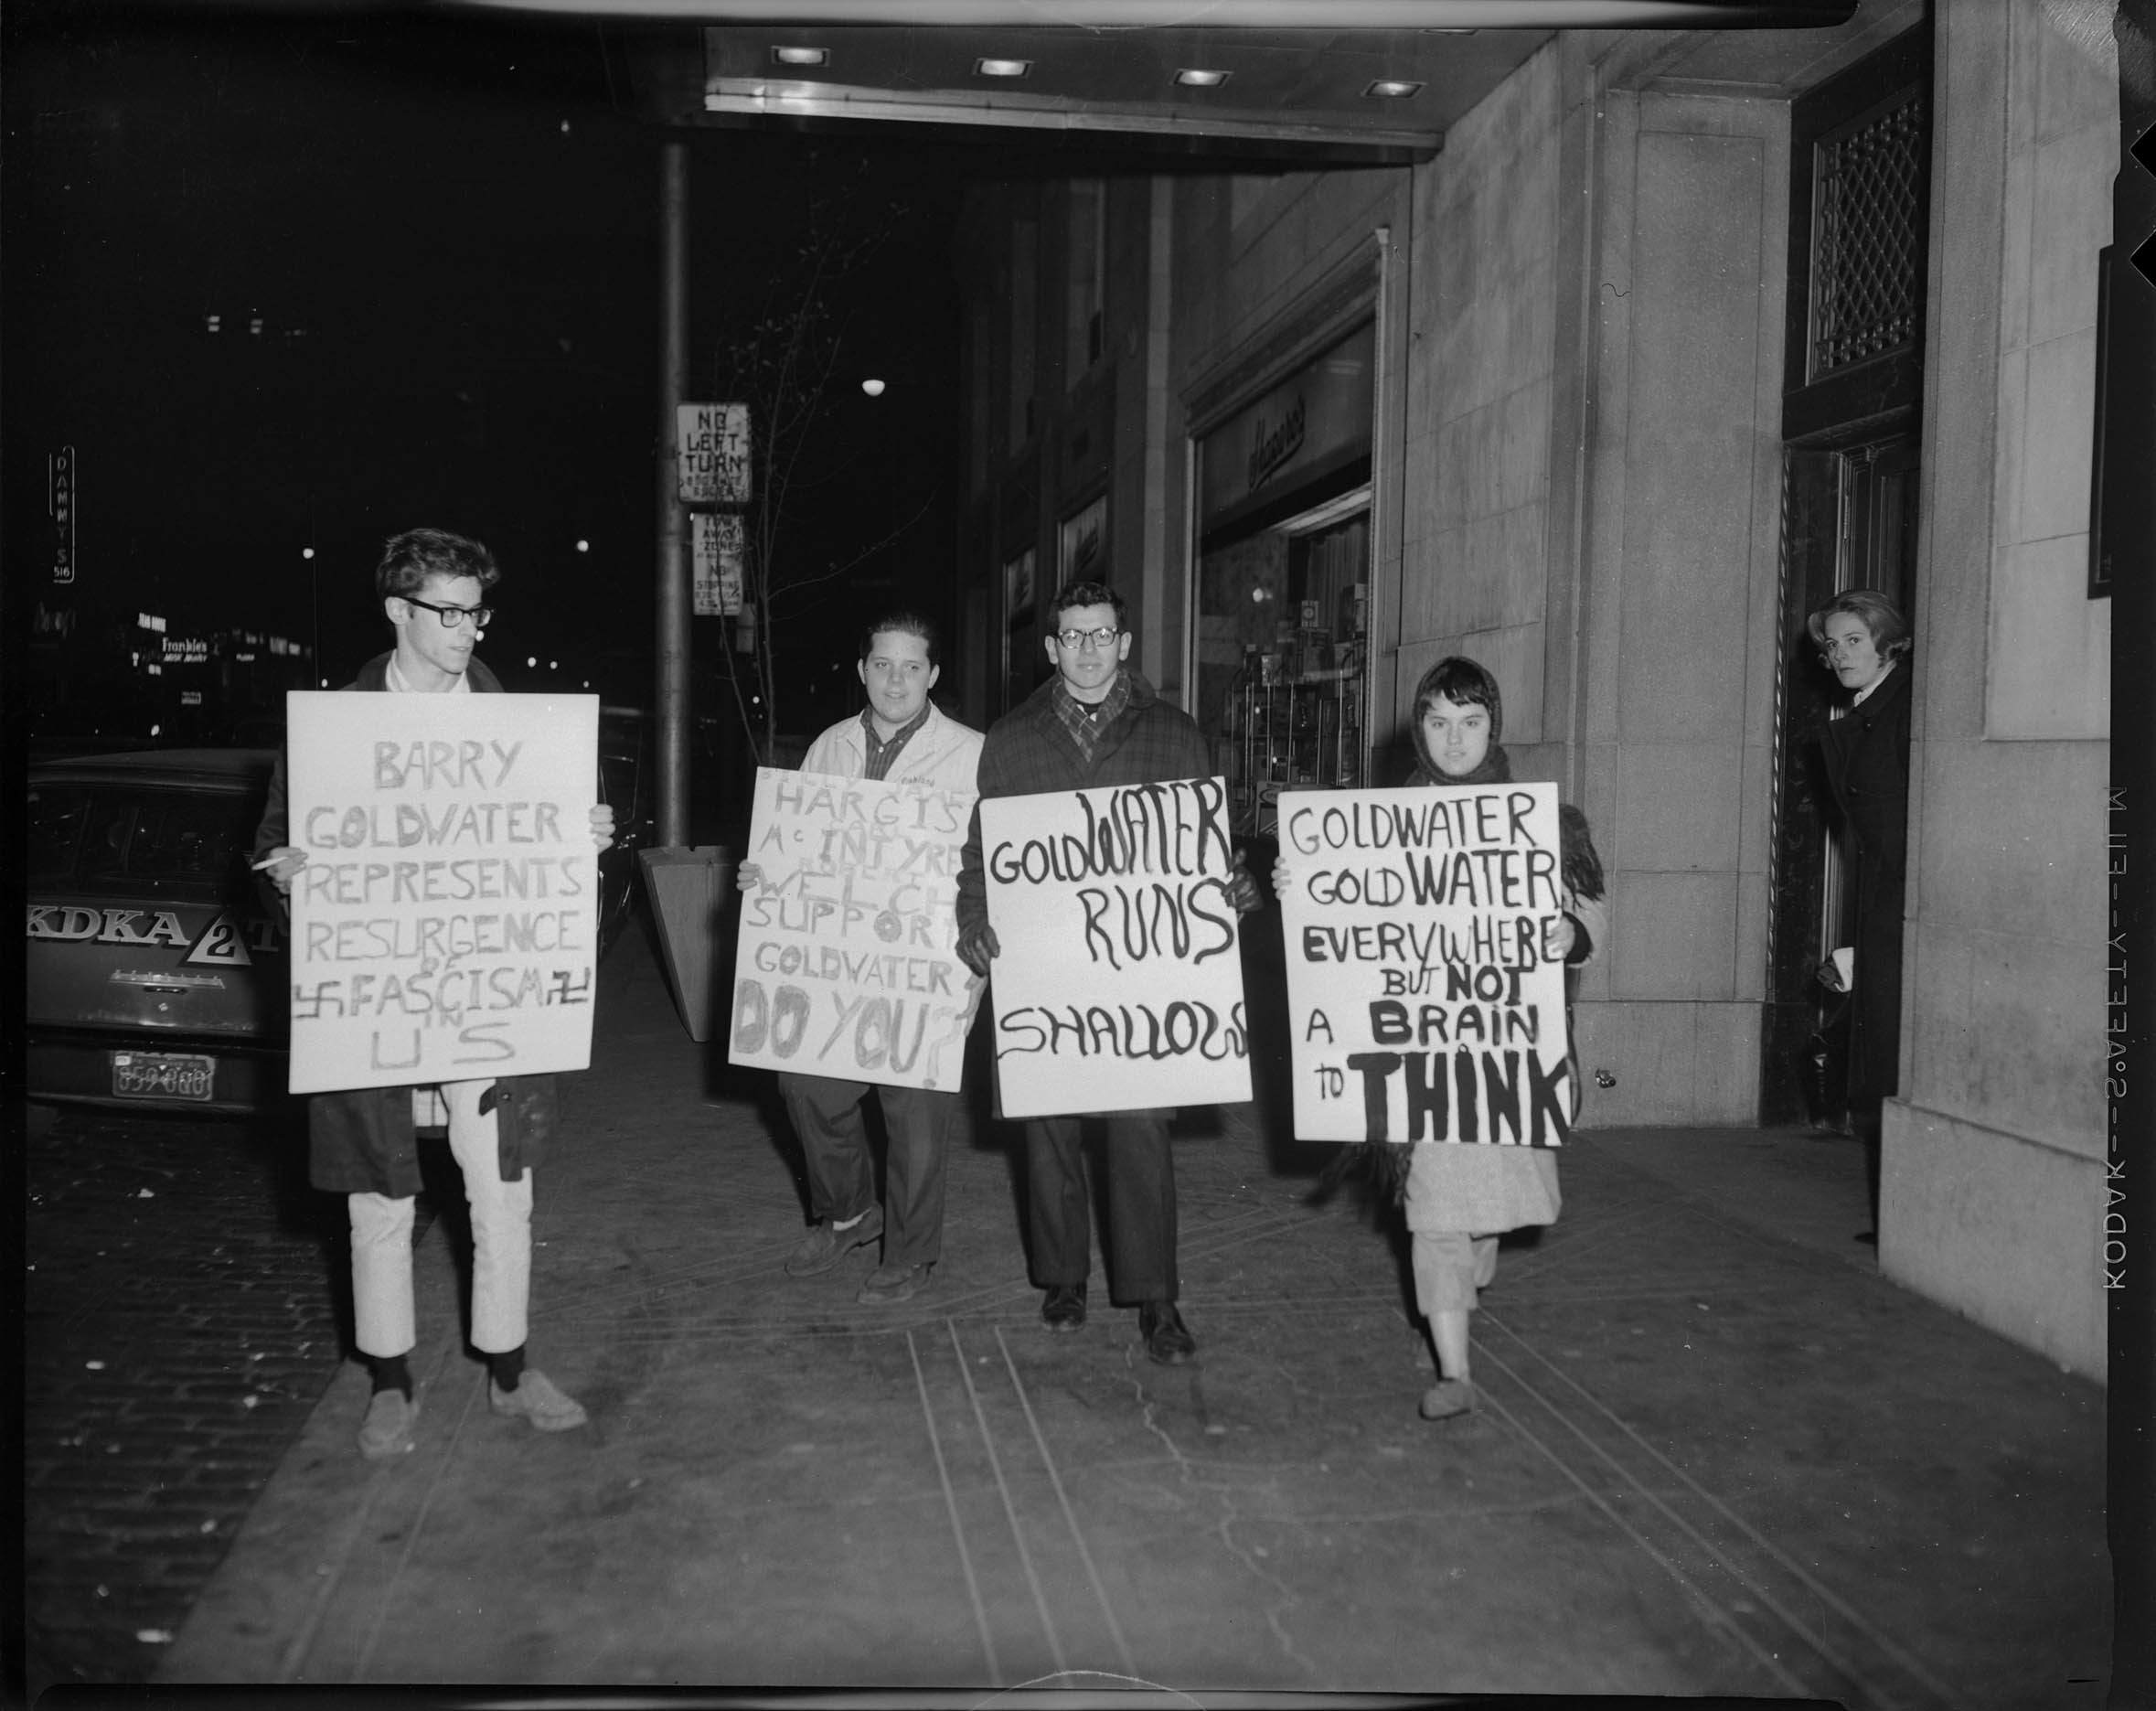 """Protestors holding signs reading """"Barry Goldwater represents resurgence of Fascism..."""